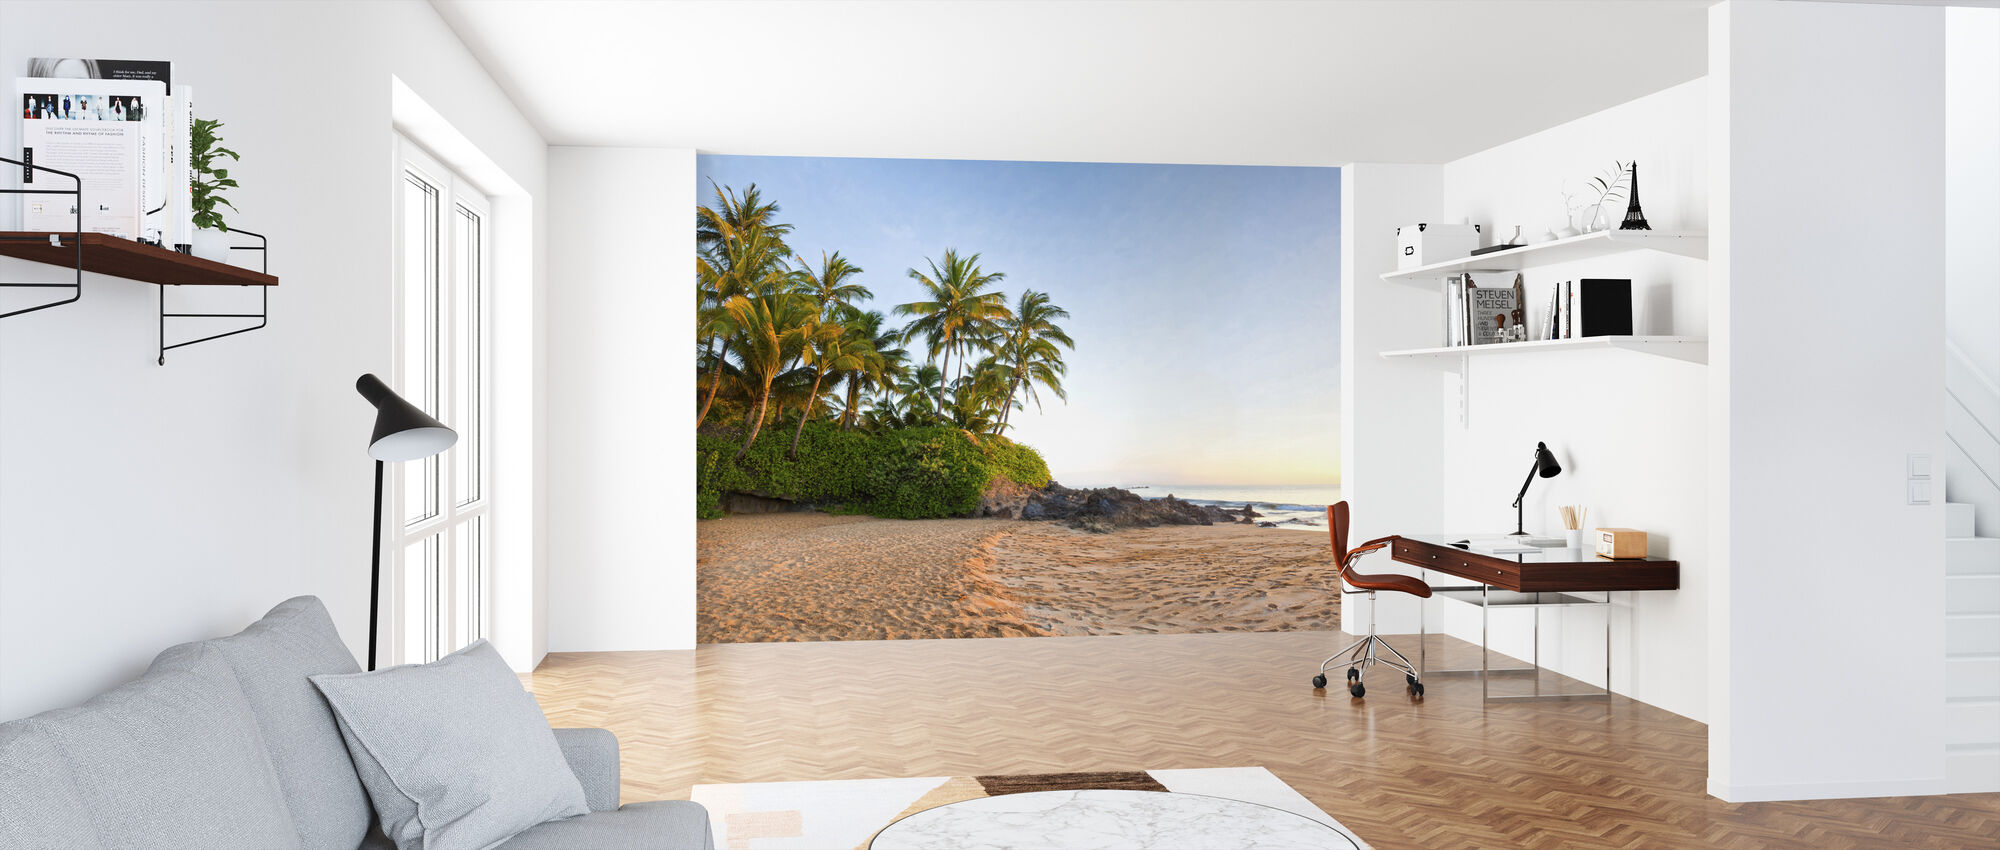 Sunset Beach - Wallpaper - Office